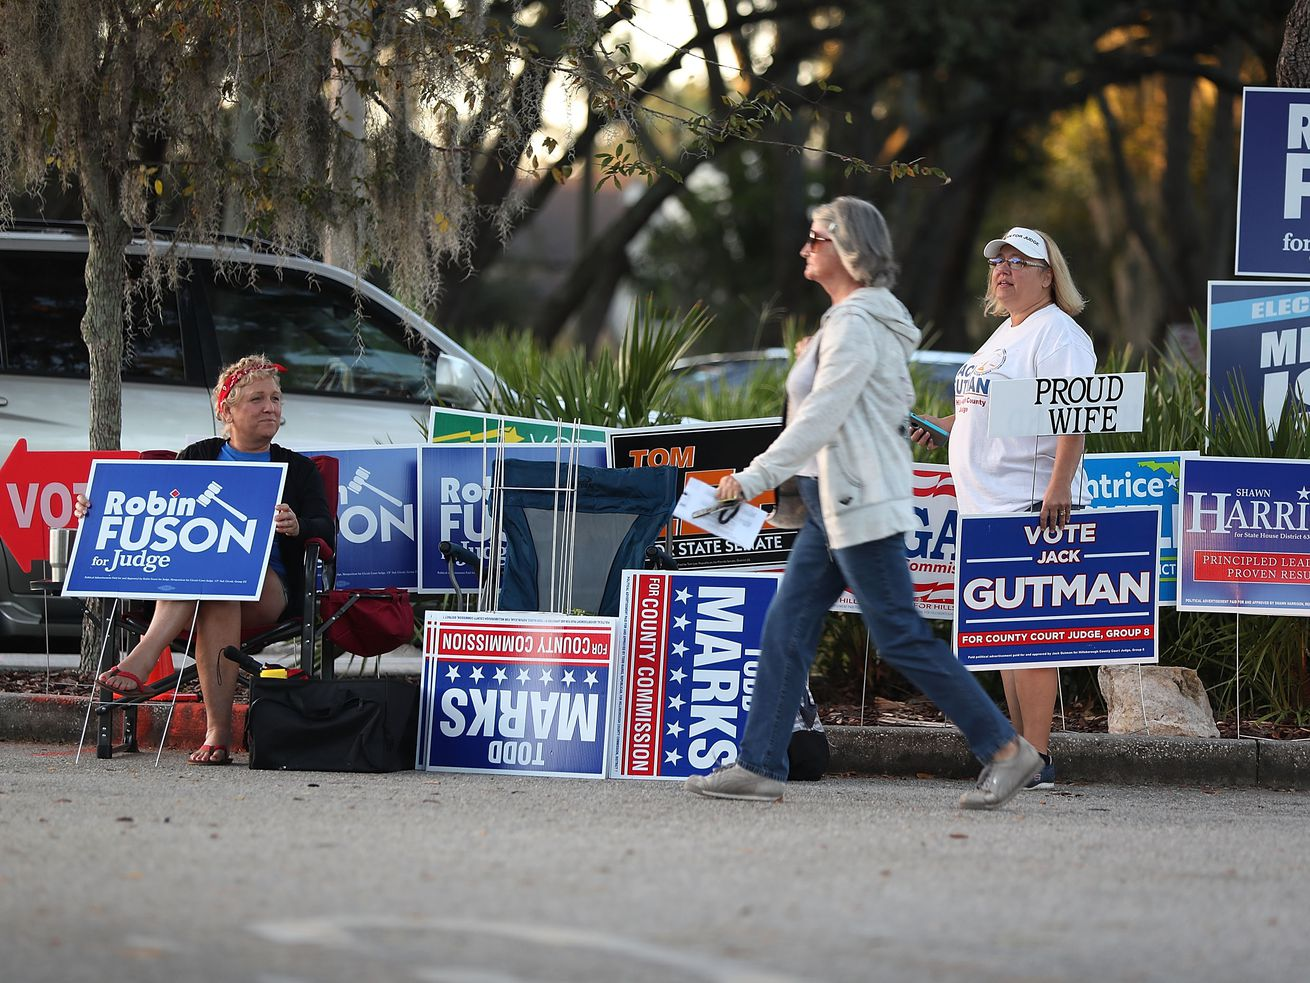 Voters head to the polls as early voting starts in Florida.